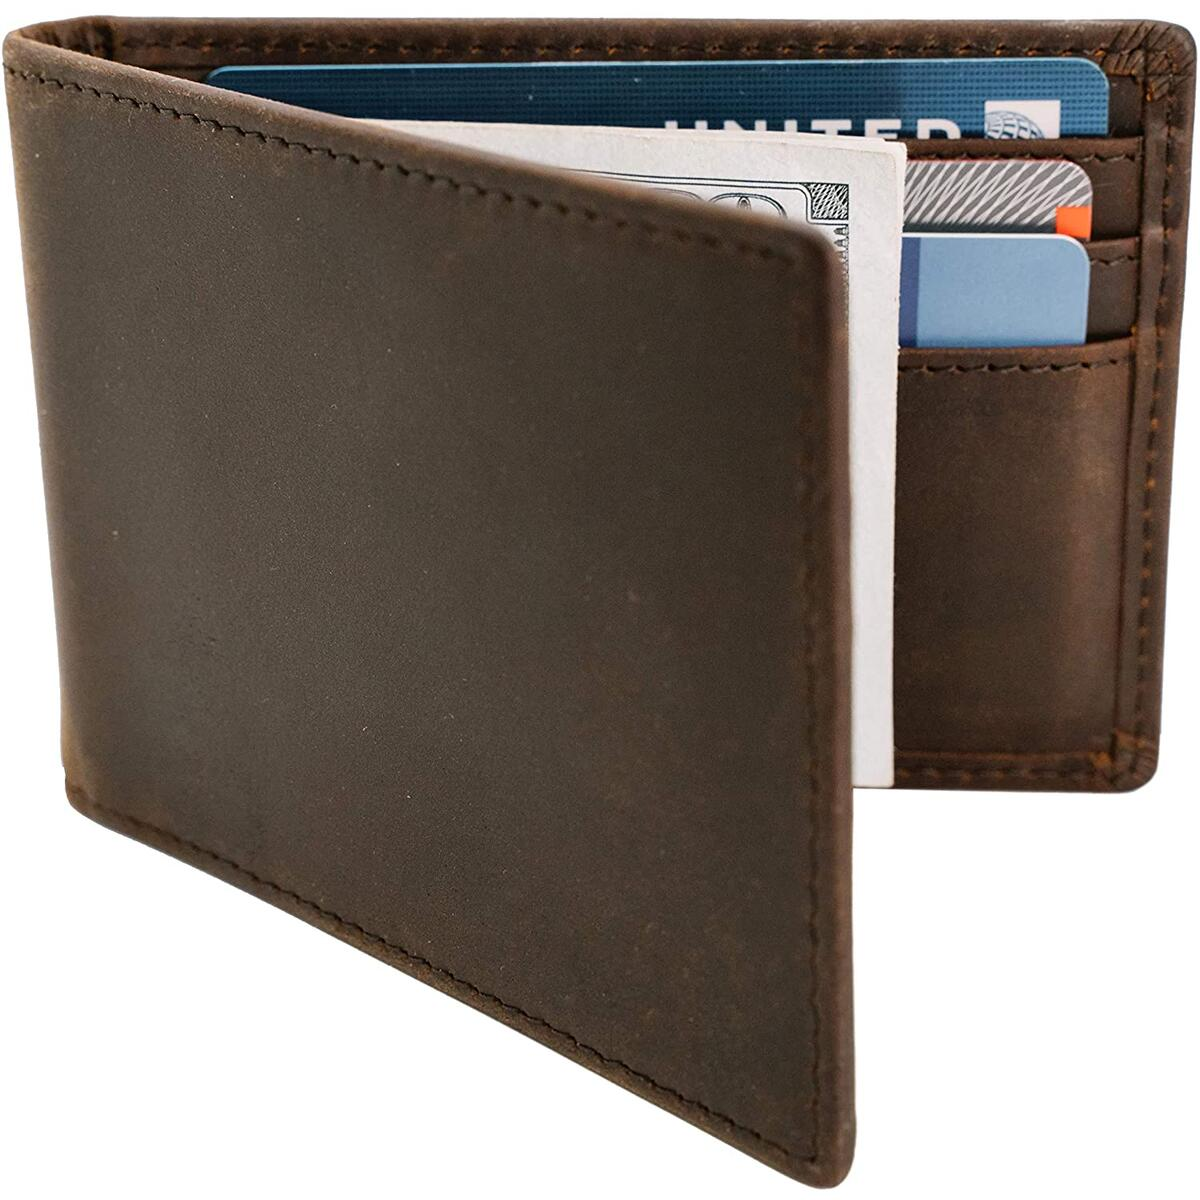 STAY FINE Minimalist Front Pocket Wallets with Money Clip | Effective RFID Blocking Wallets for Men |